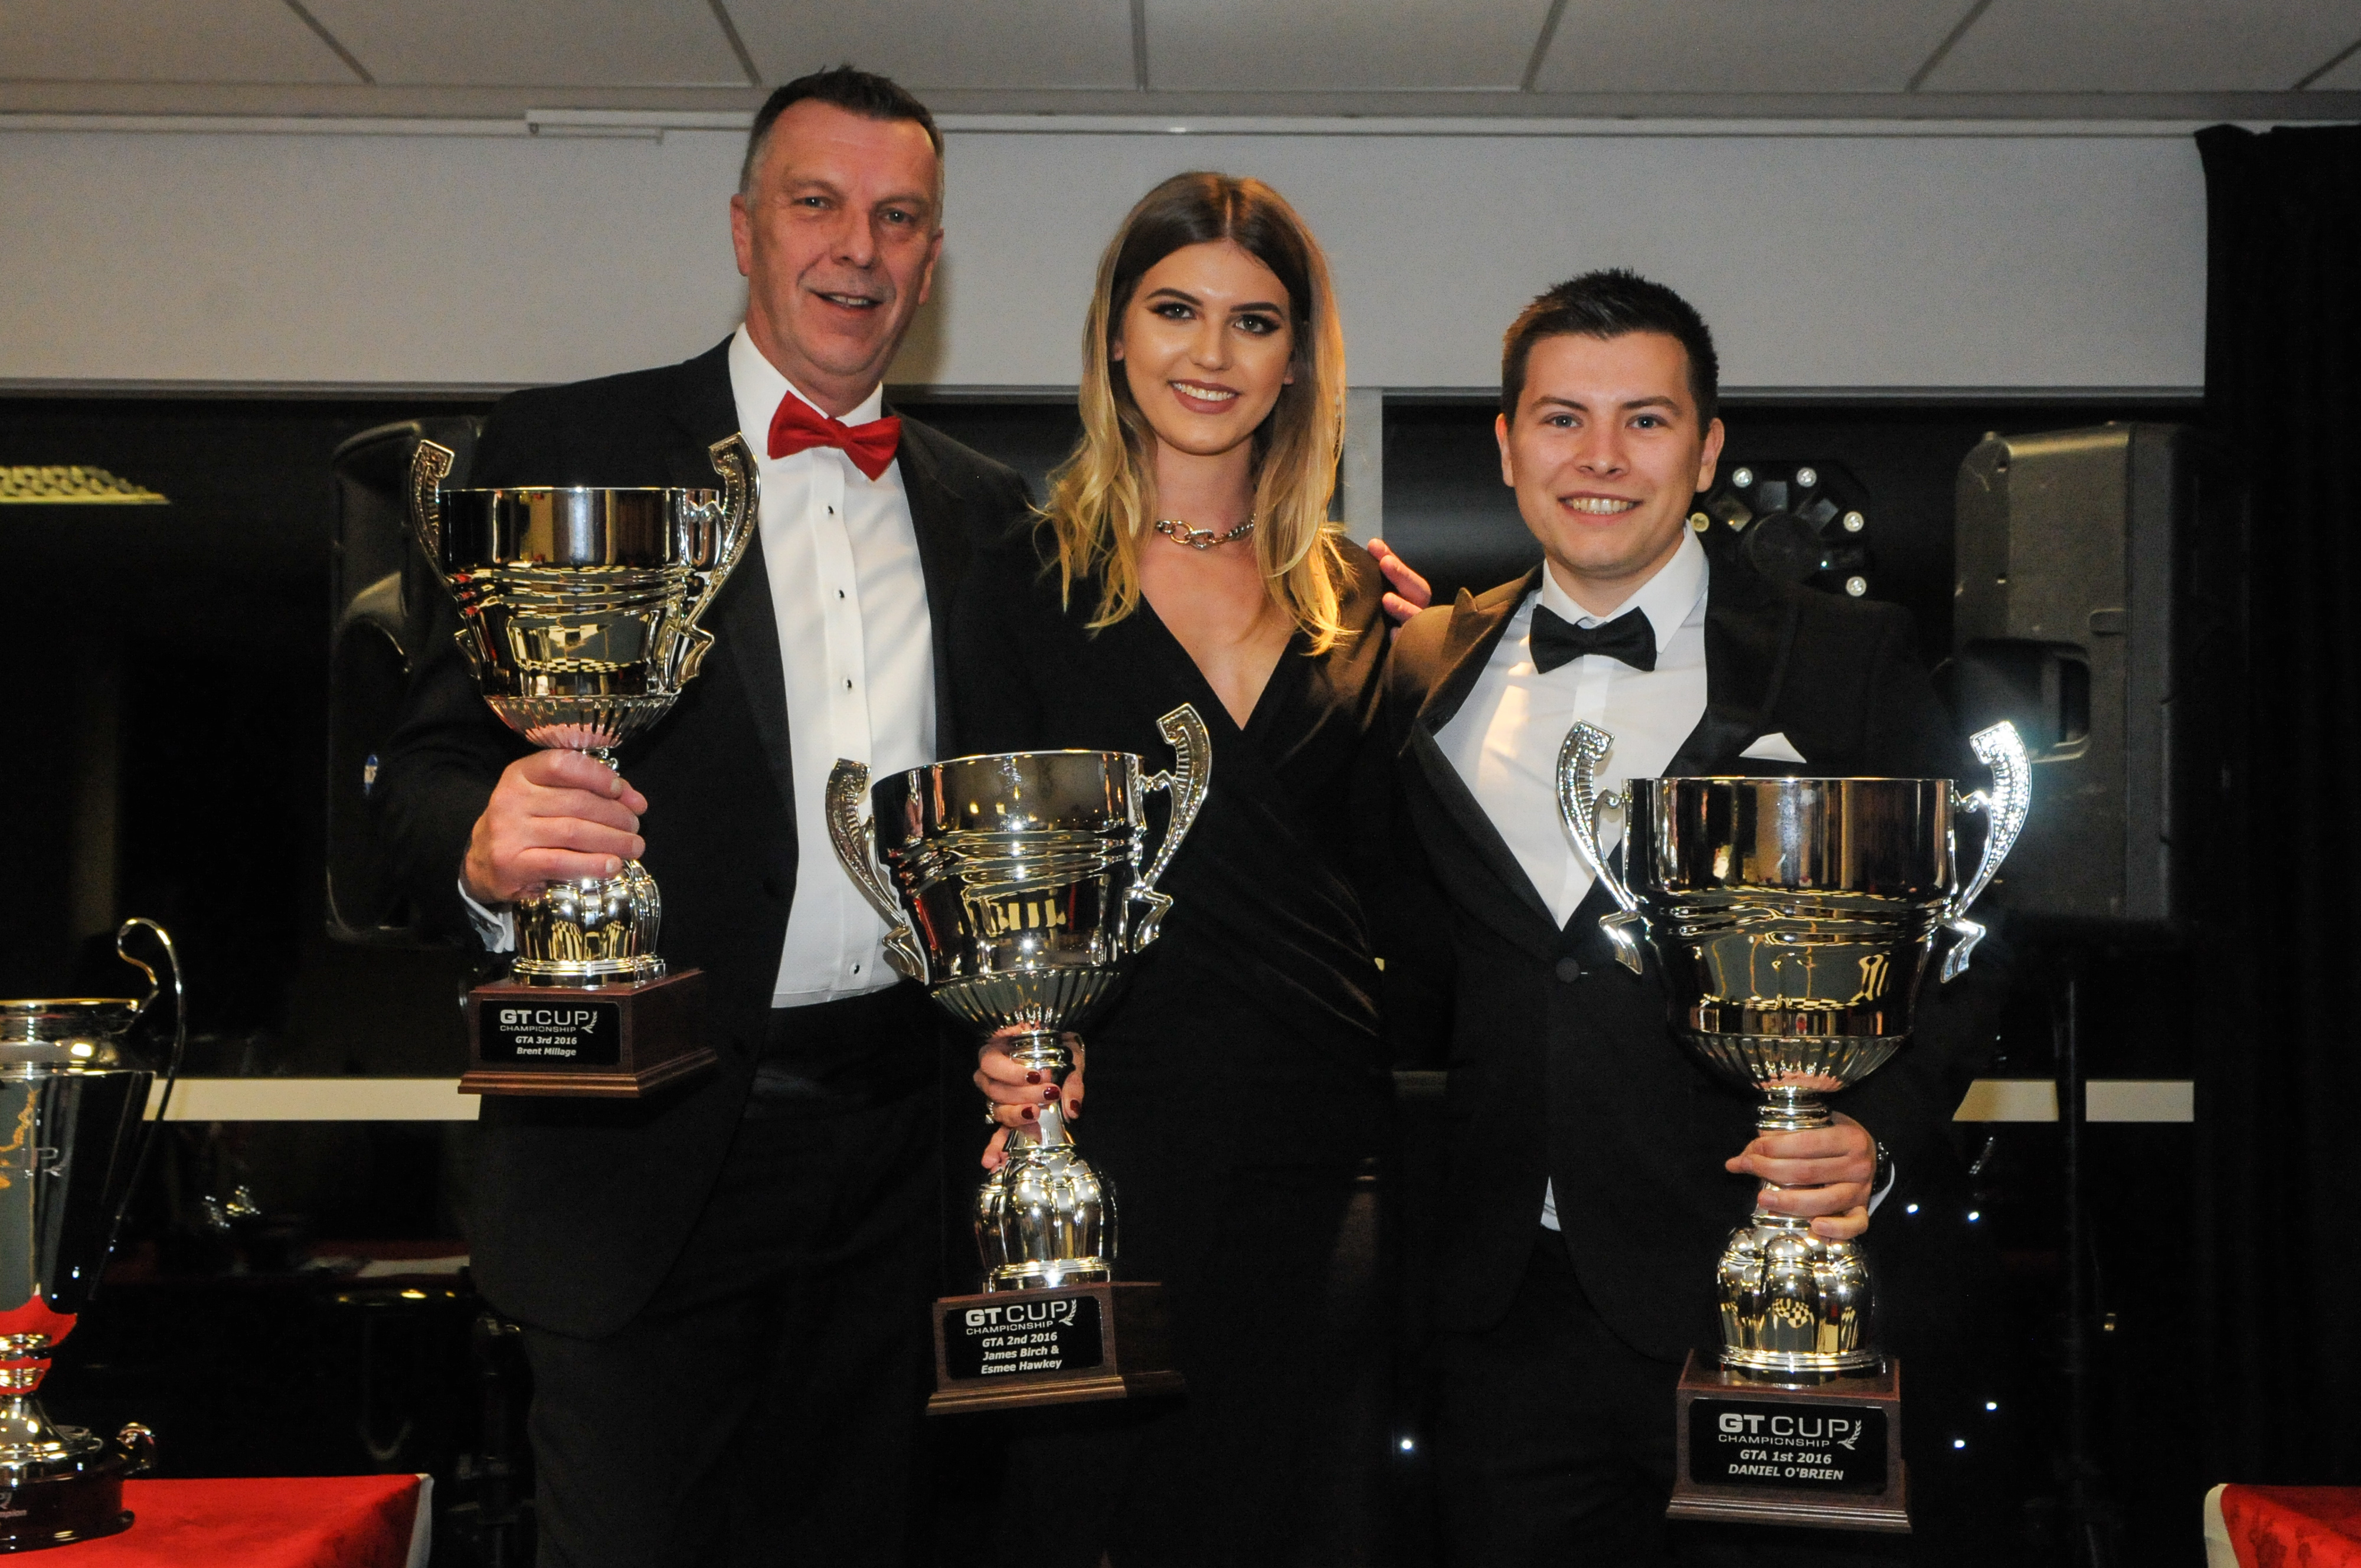 MSVR News - 2016 F3 Cup & GT Cup Champions crowned at Brands Hatch